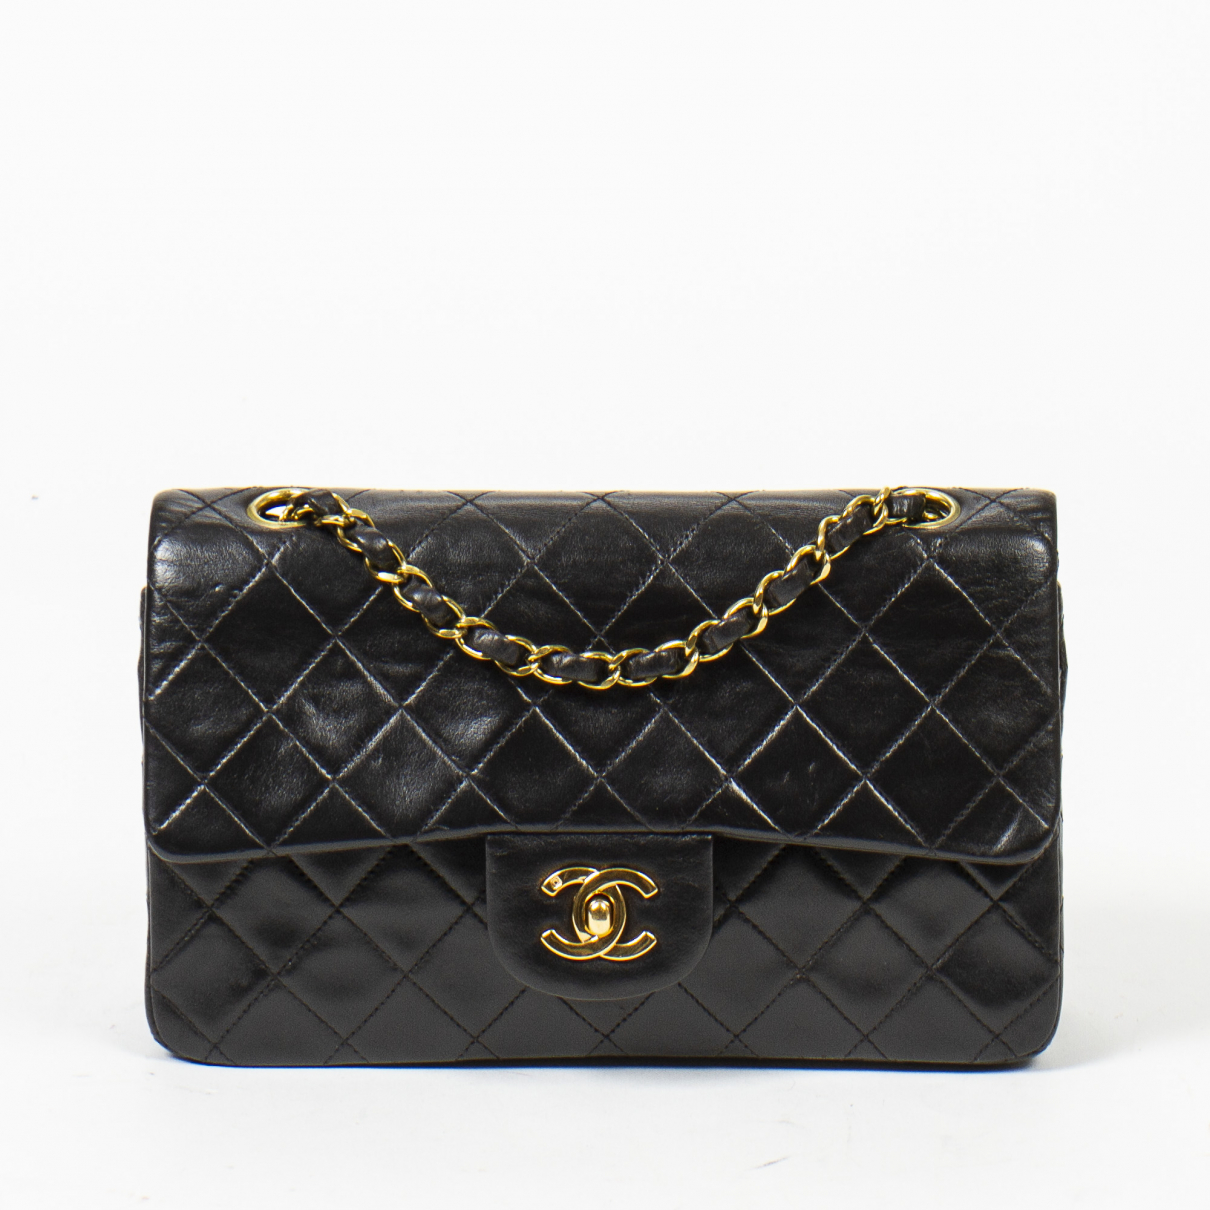 Chanel Timeless/Classique Black Leather handbag for Women \N